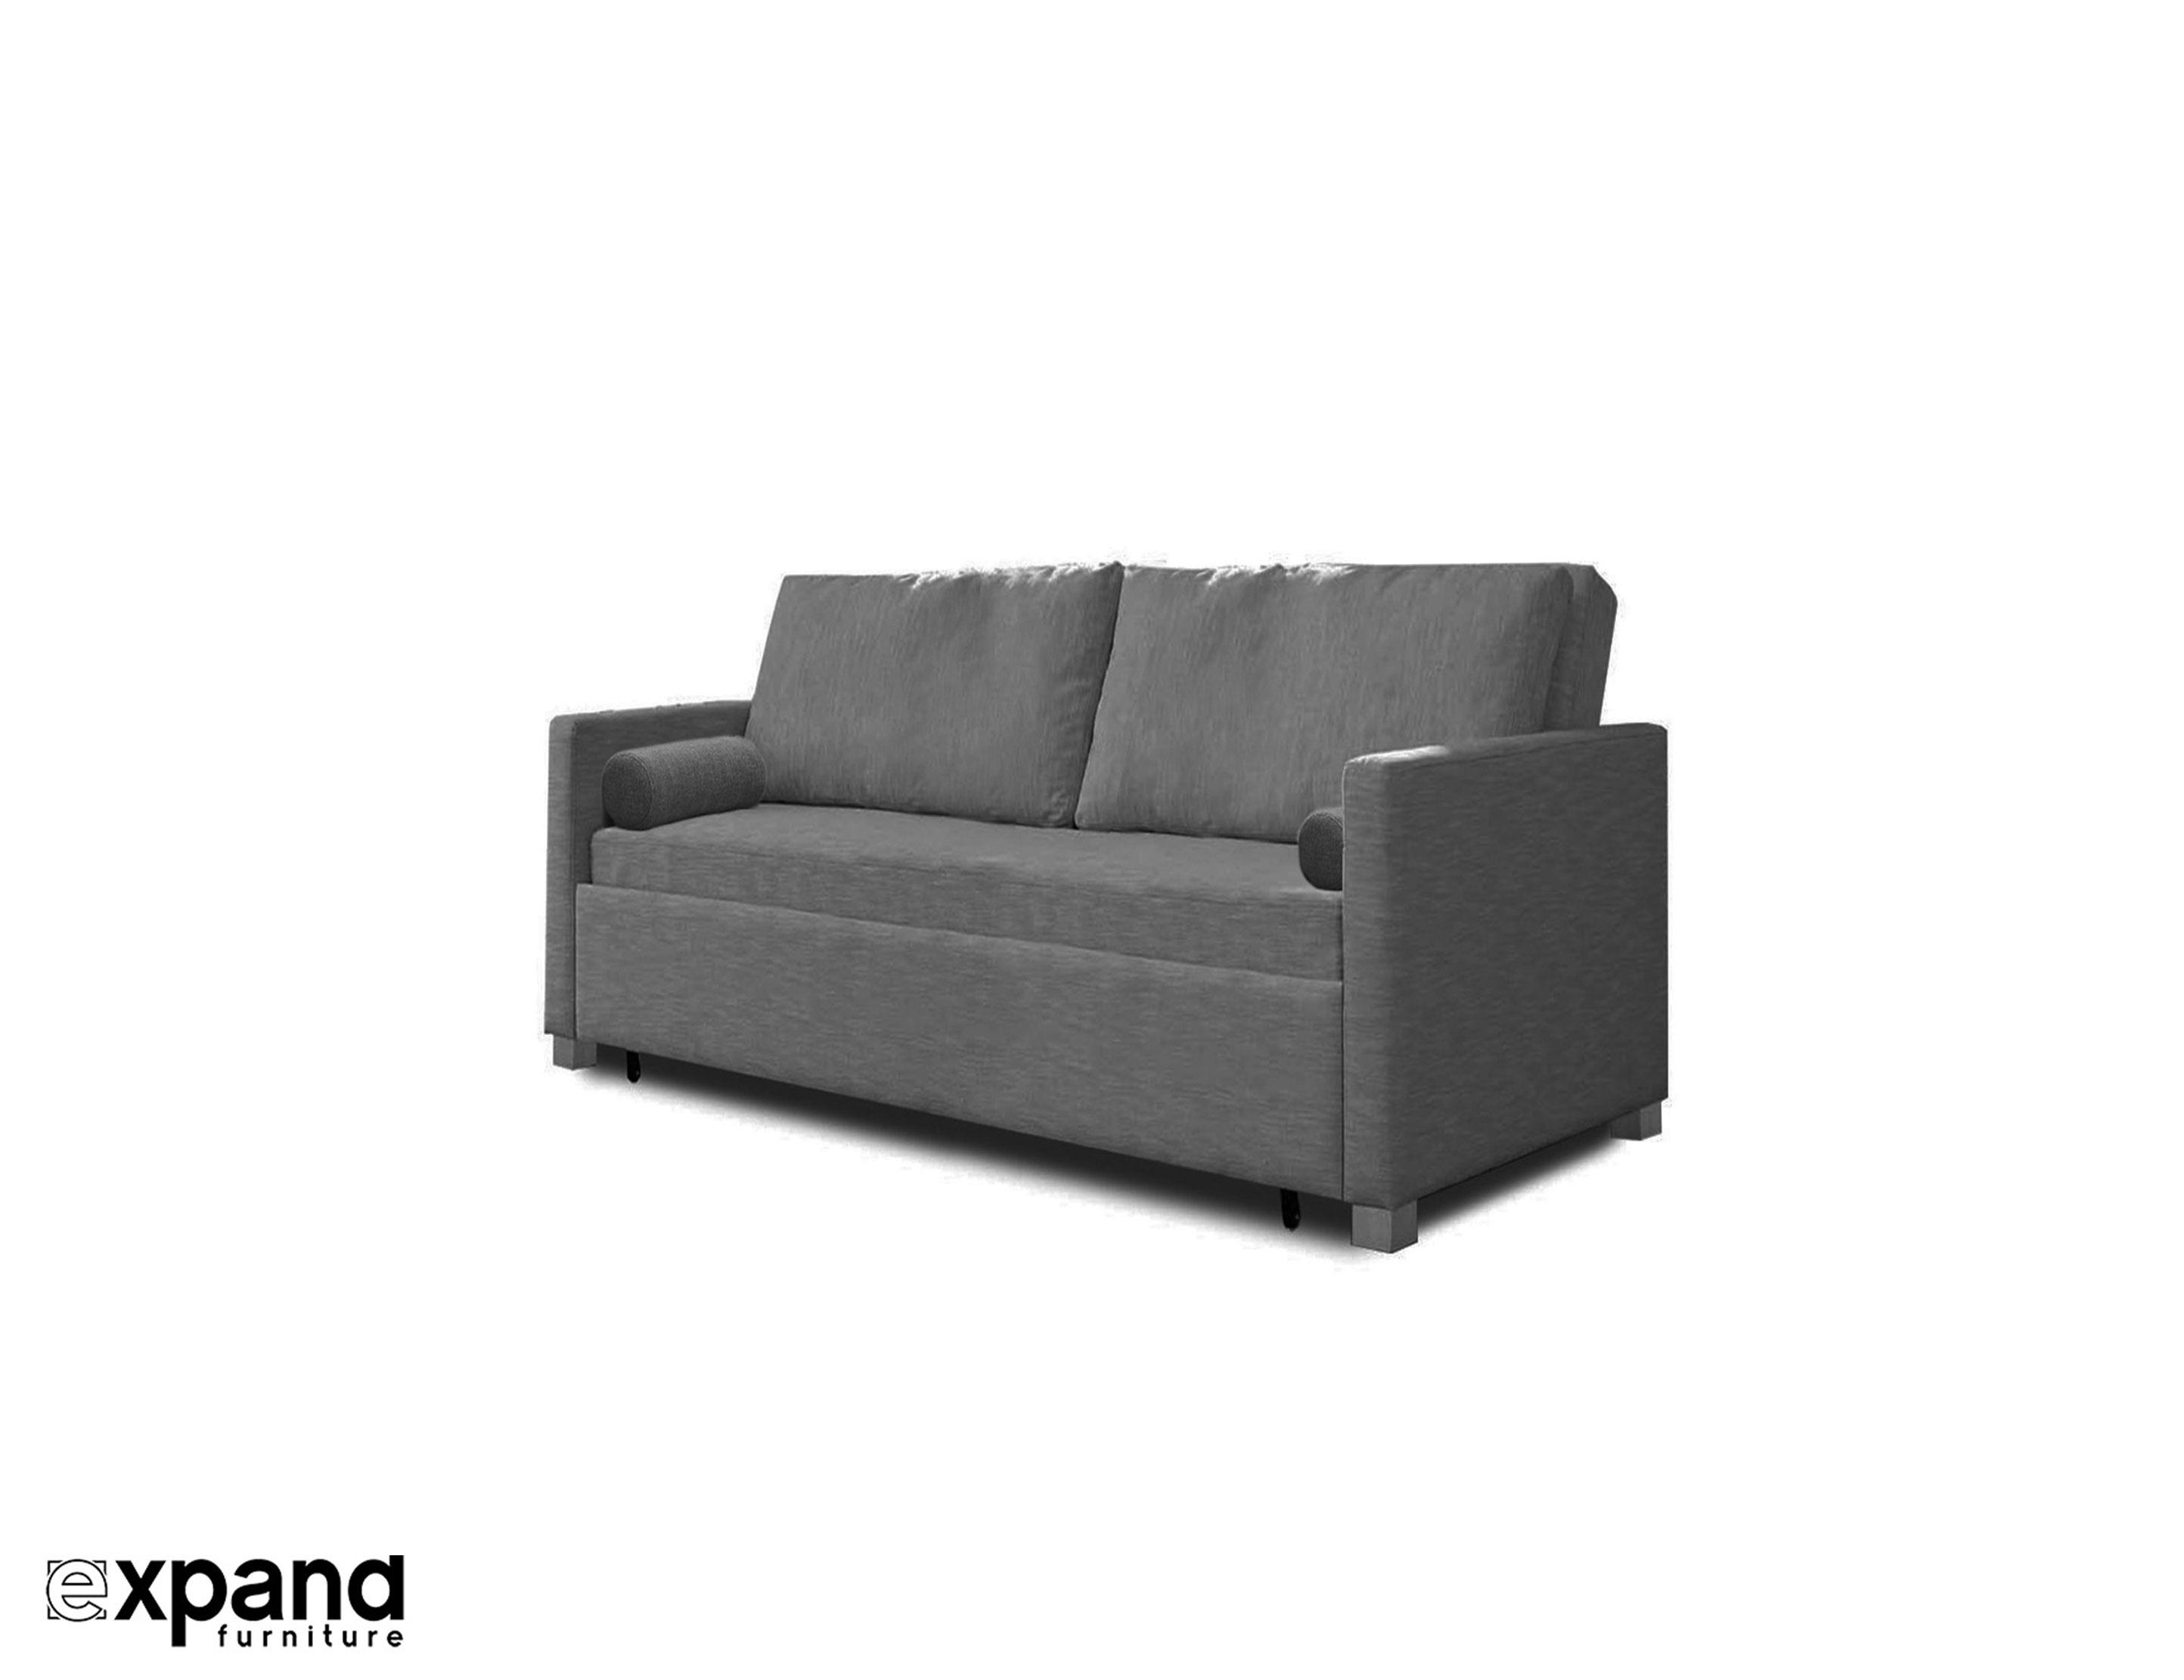 Harmony – Queen Size Memory Foam Sofa Bed | Expand Furniture Pertaining To Sofa Beds Queen (View 14 of 21)